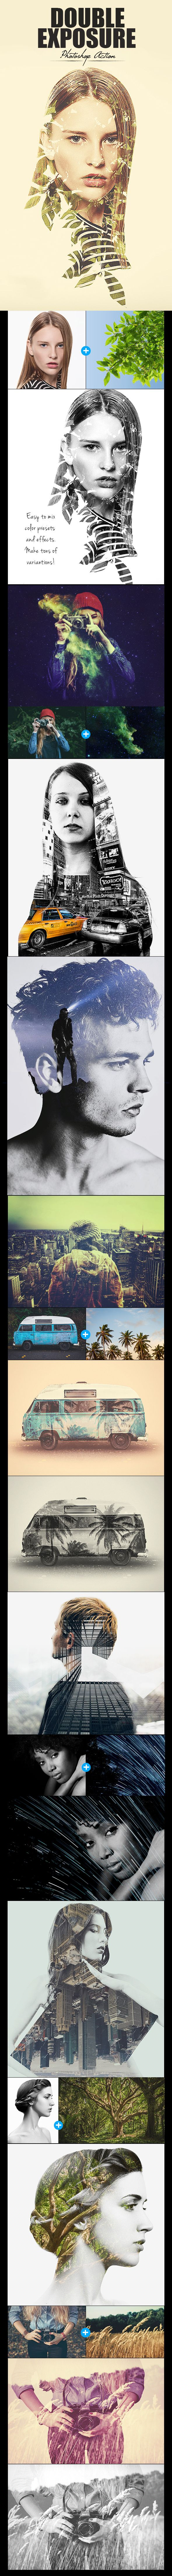 Double Exposure Photo Effect. Download here: graphicriver.net/…